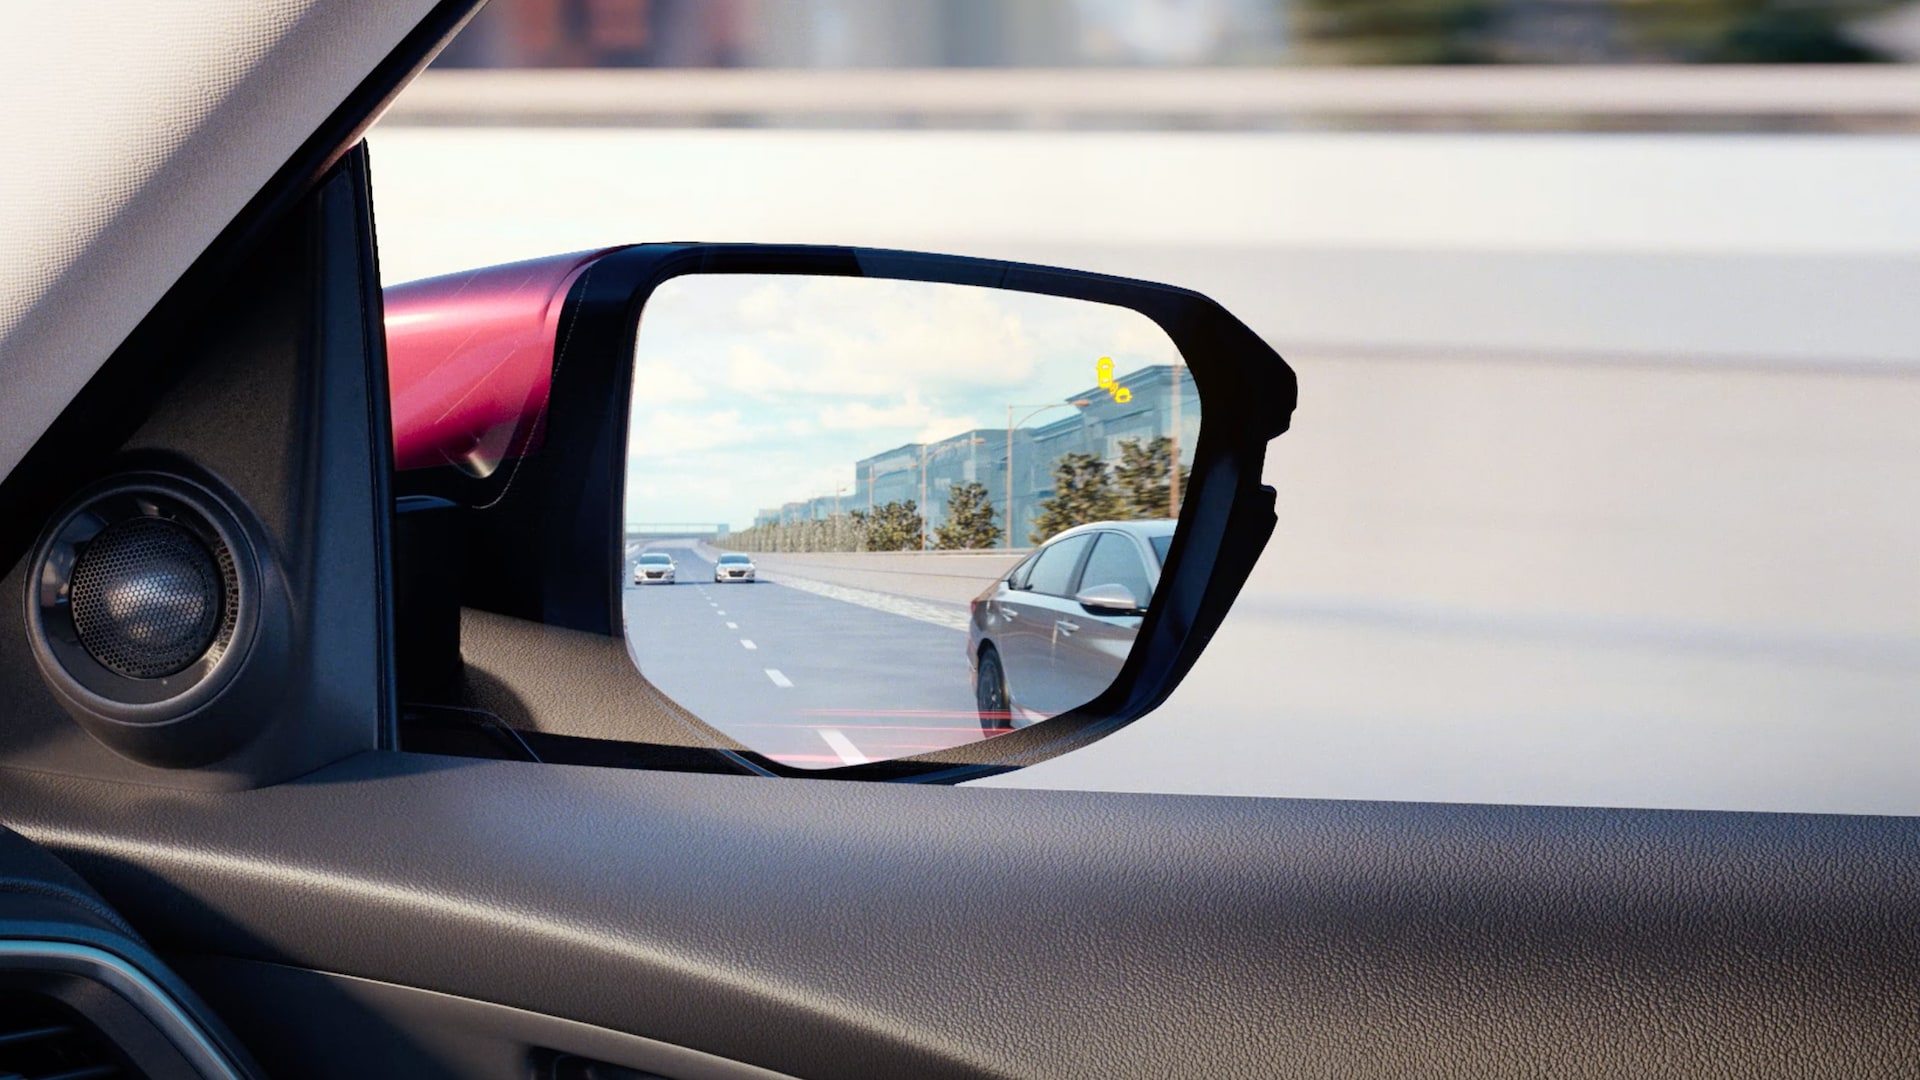 Detail of blind spot information system indicator on passenger-side mirror in the 2021 Honda Insight.